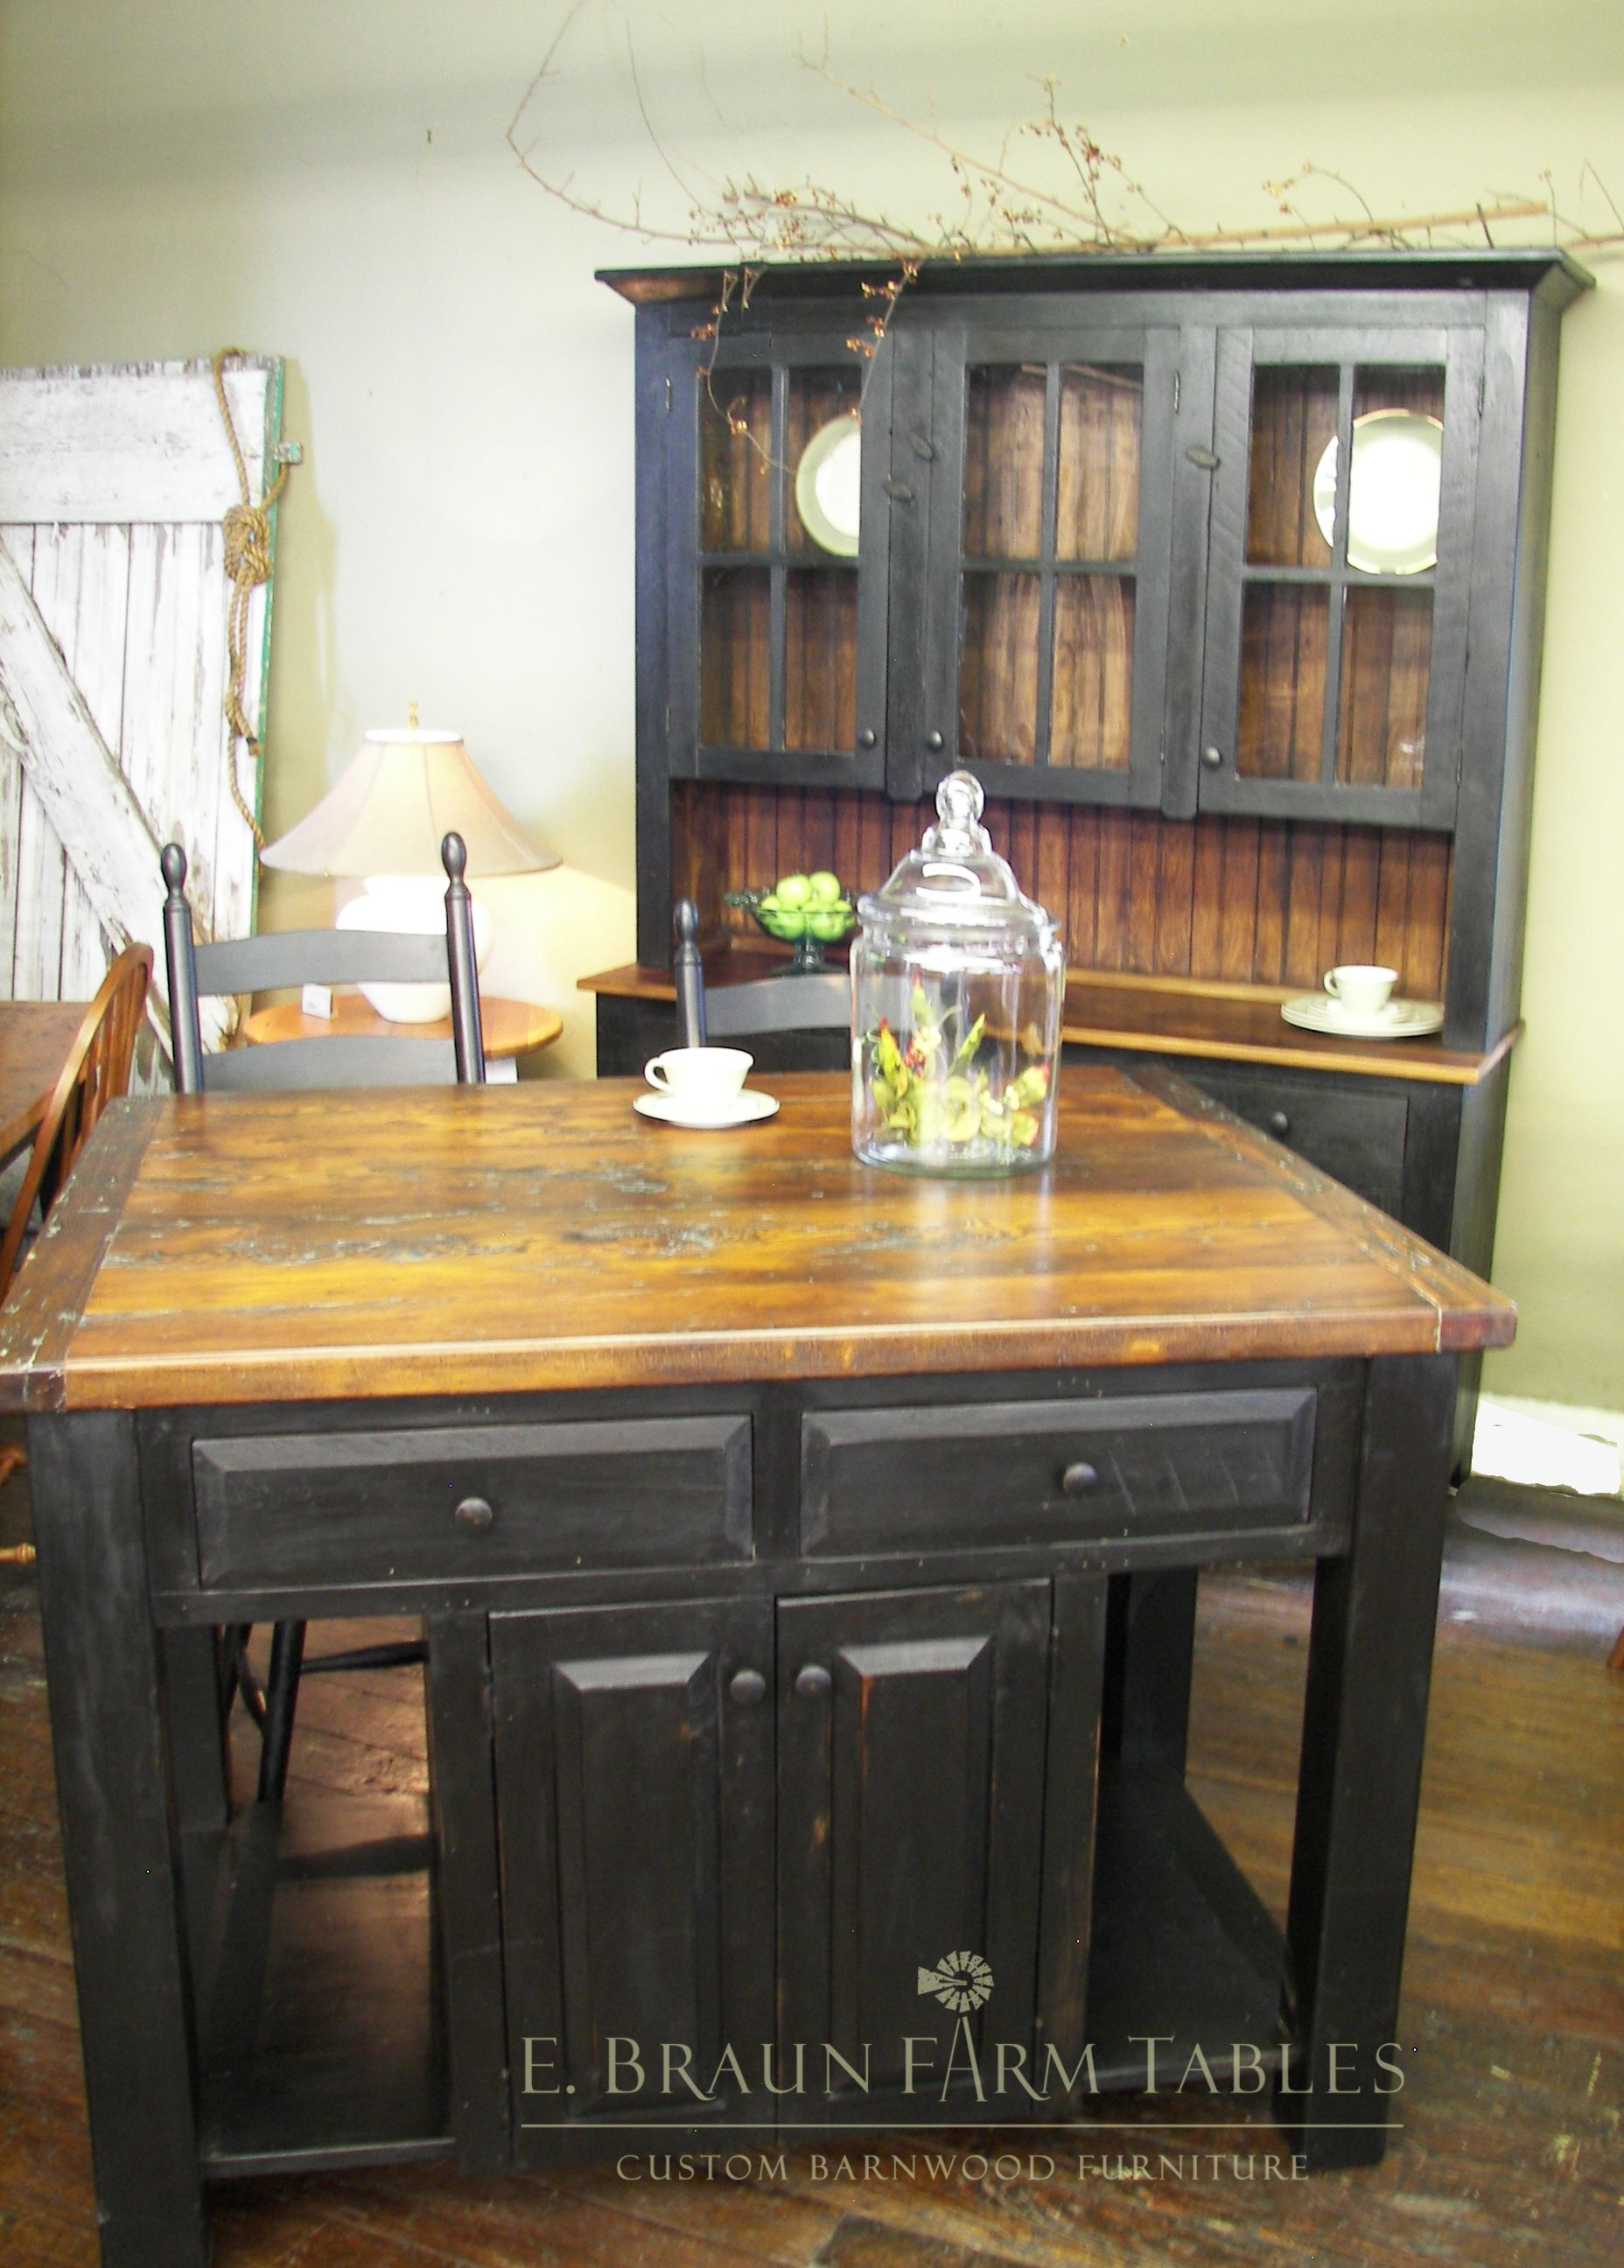 ... E. Braun Farm Tables And Furniture   We Custom Make Furniture For All  Rooms Of The Home Using 100+ Year Old Authentic Reclaimed Barn Wood.  Showroom ...